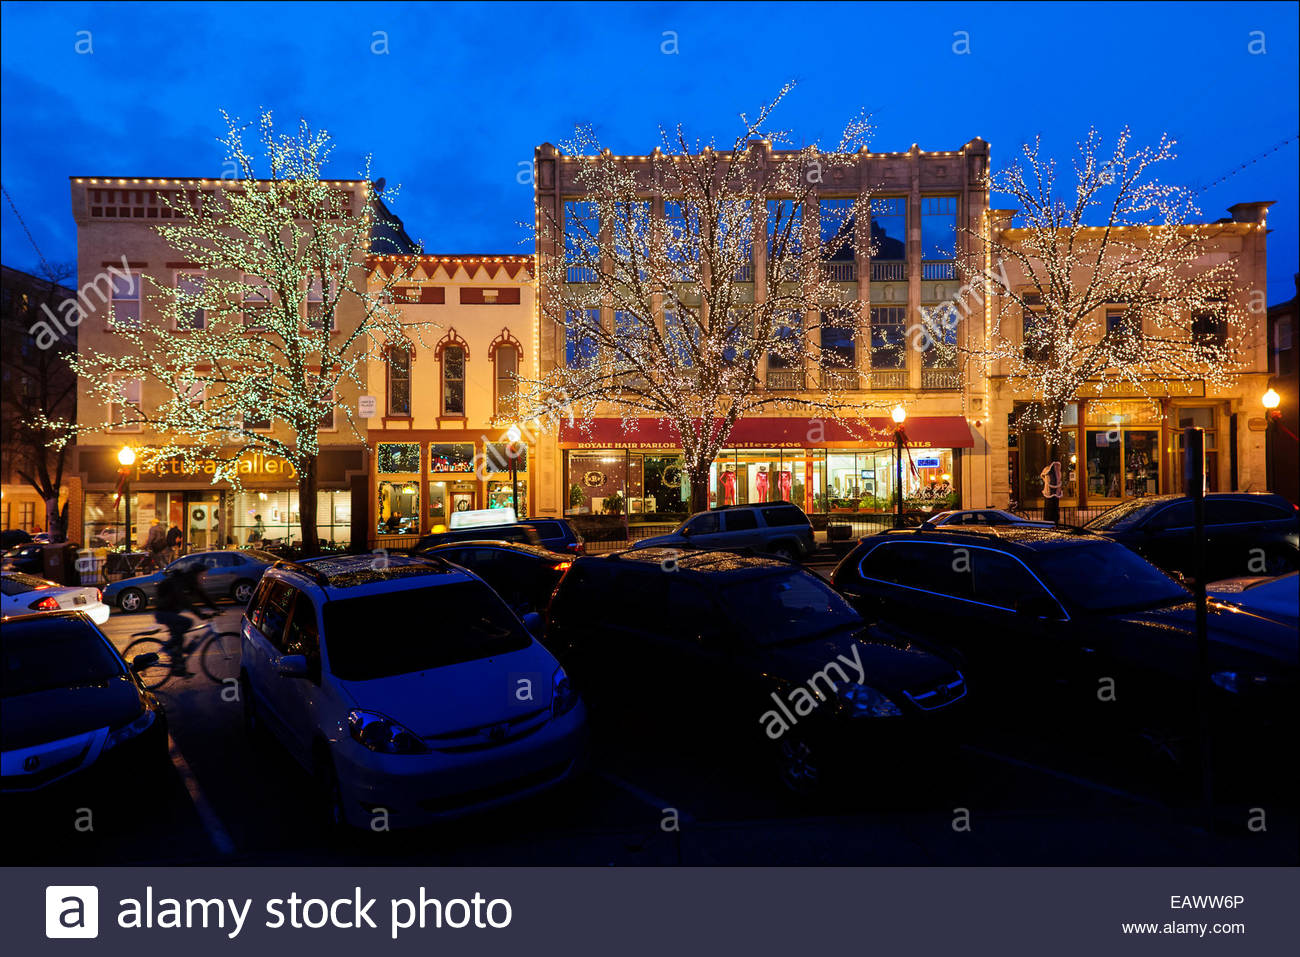 From late November until early January, a canopy of holiday lights along West Sixth Street helps transform the Court Stock Photo